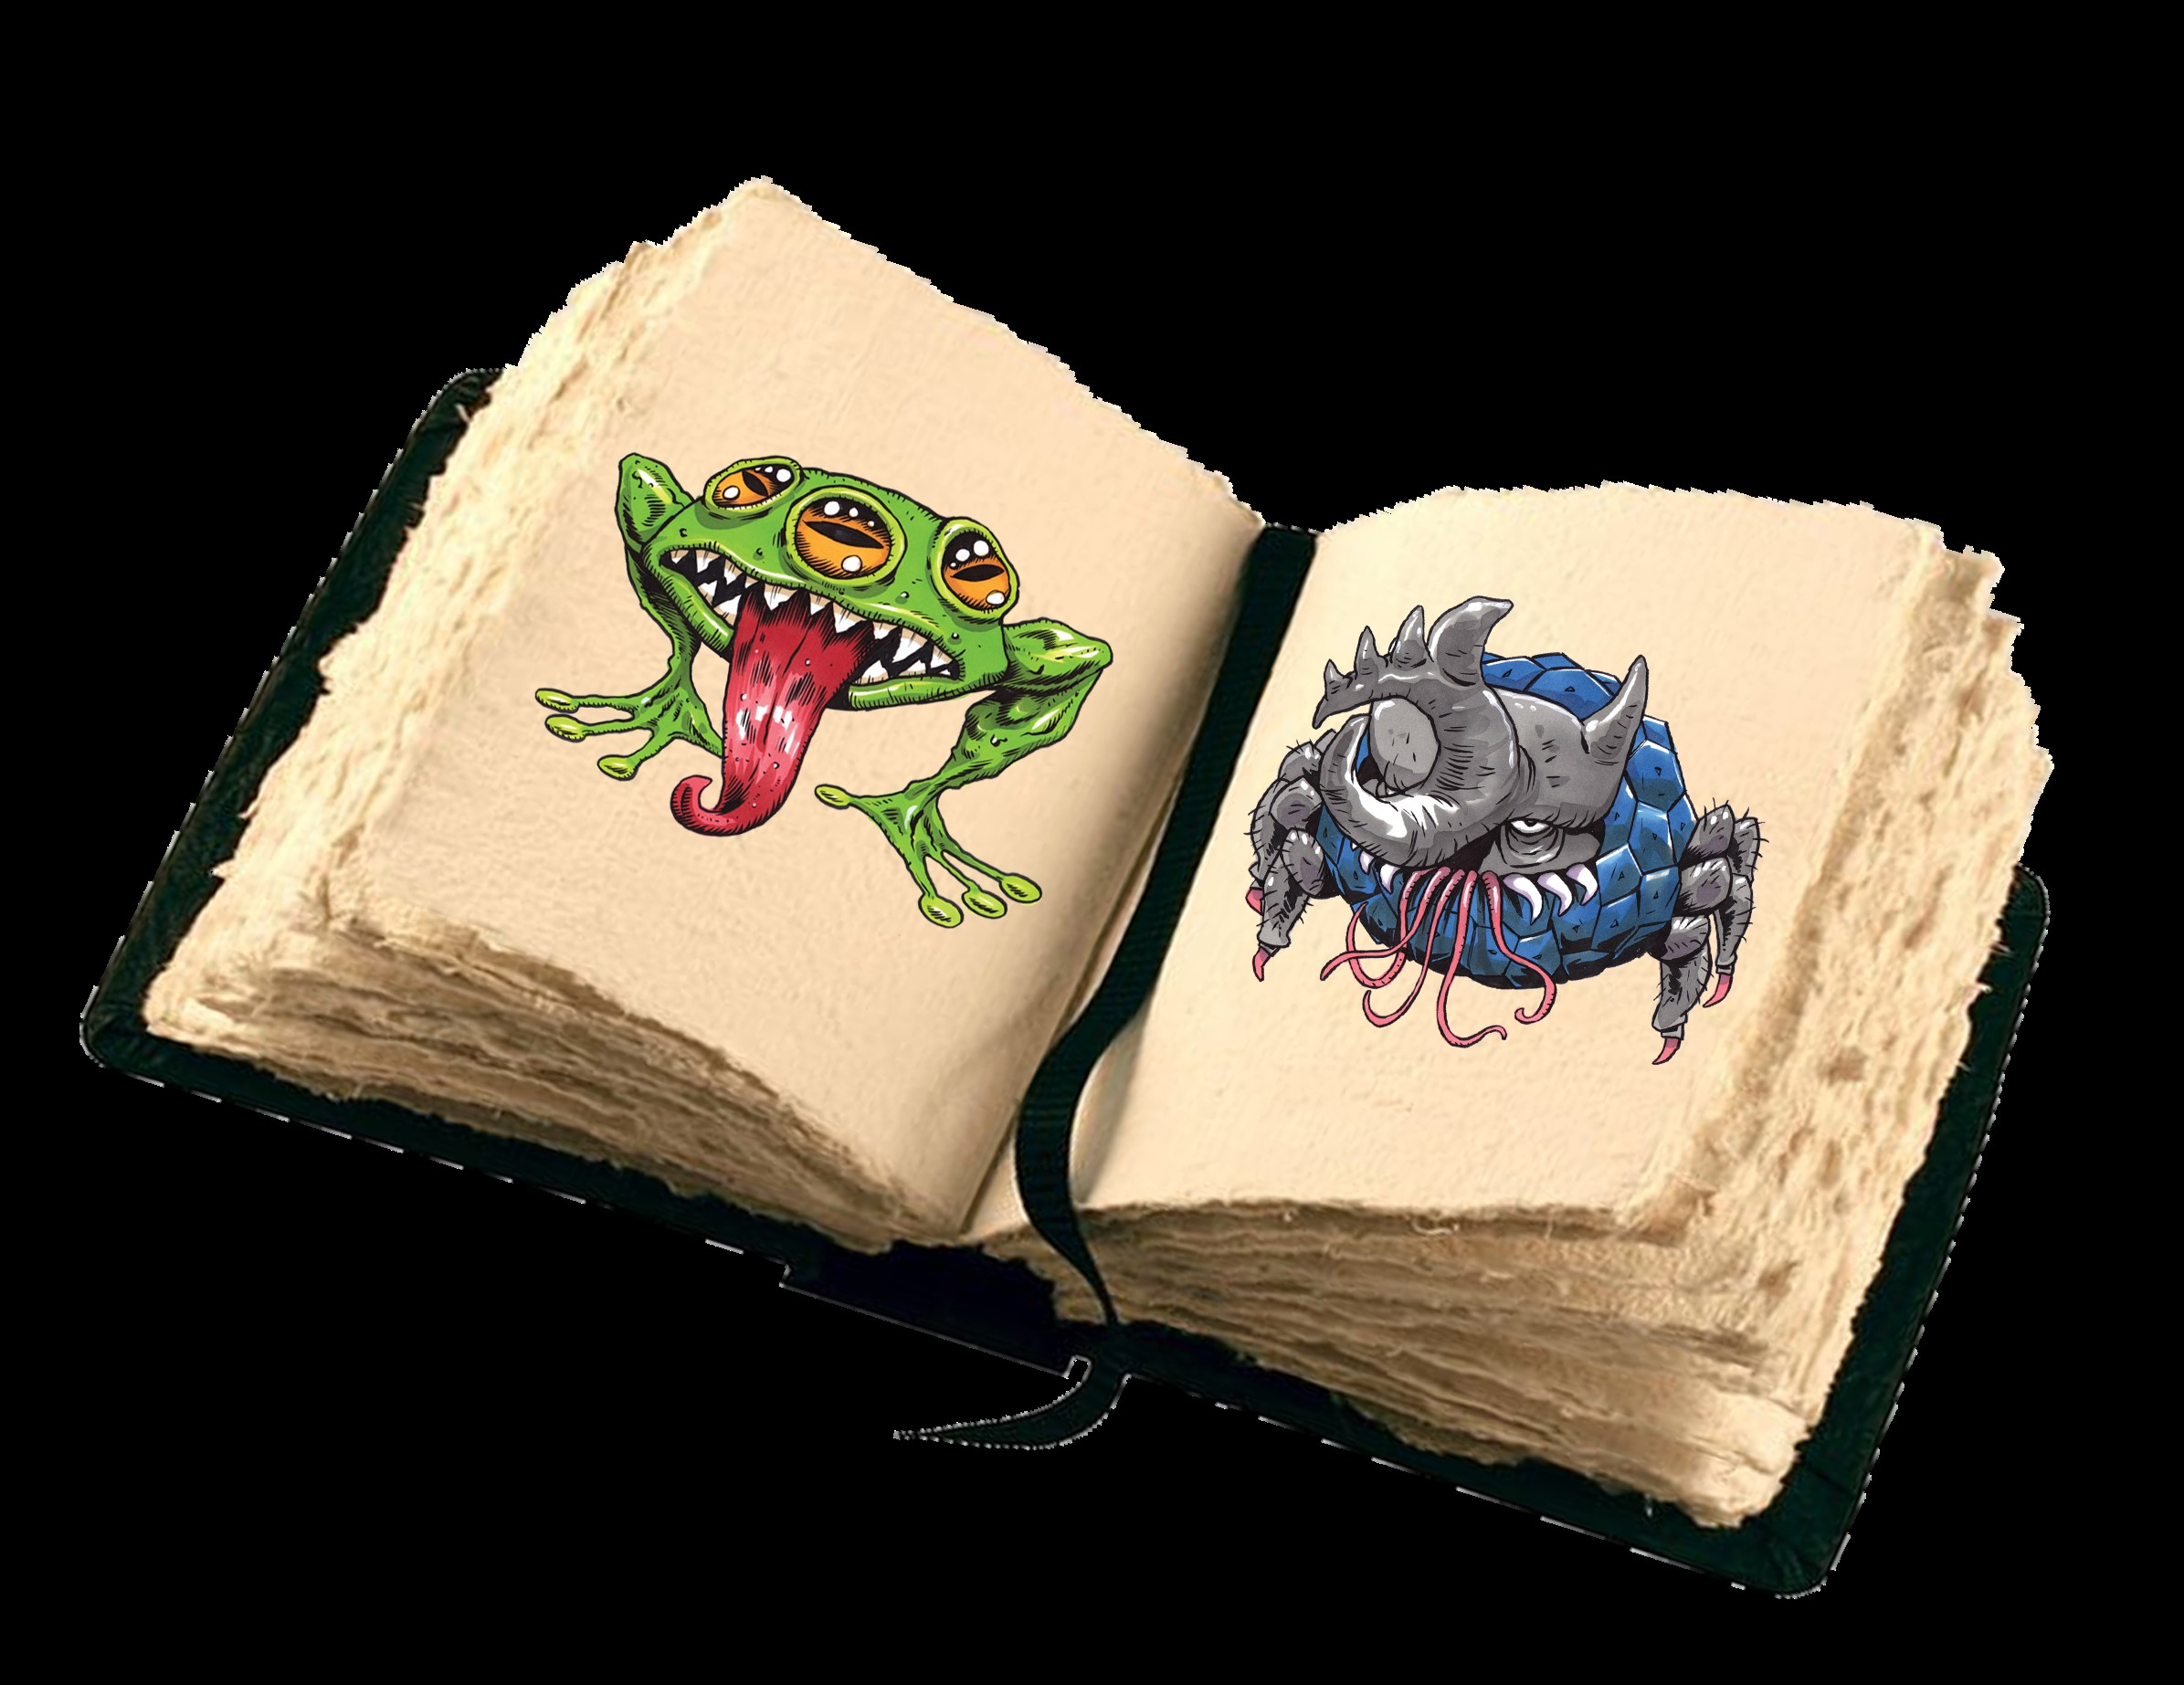 Photo of open book with cartoon monsters.